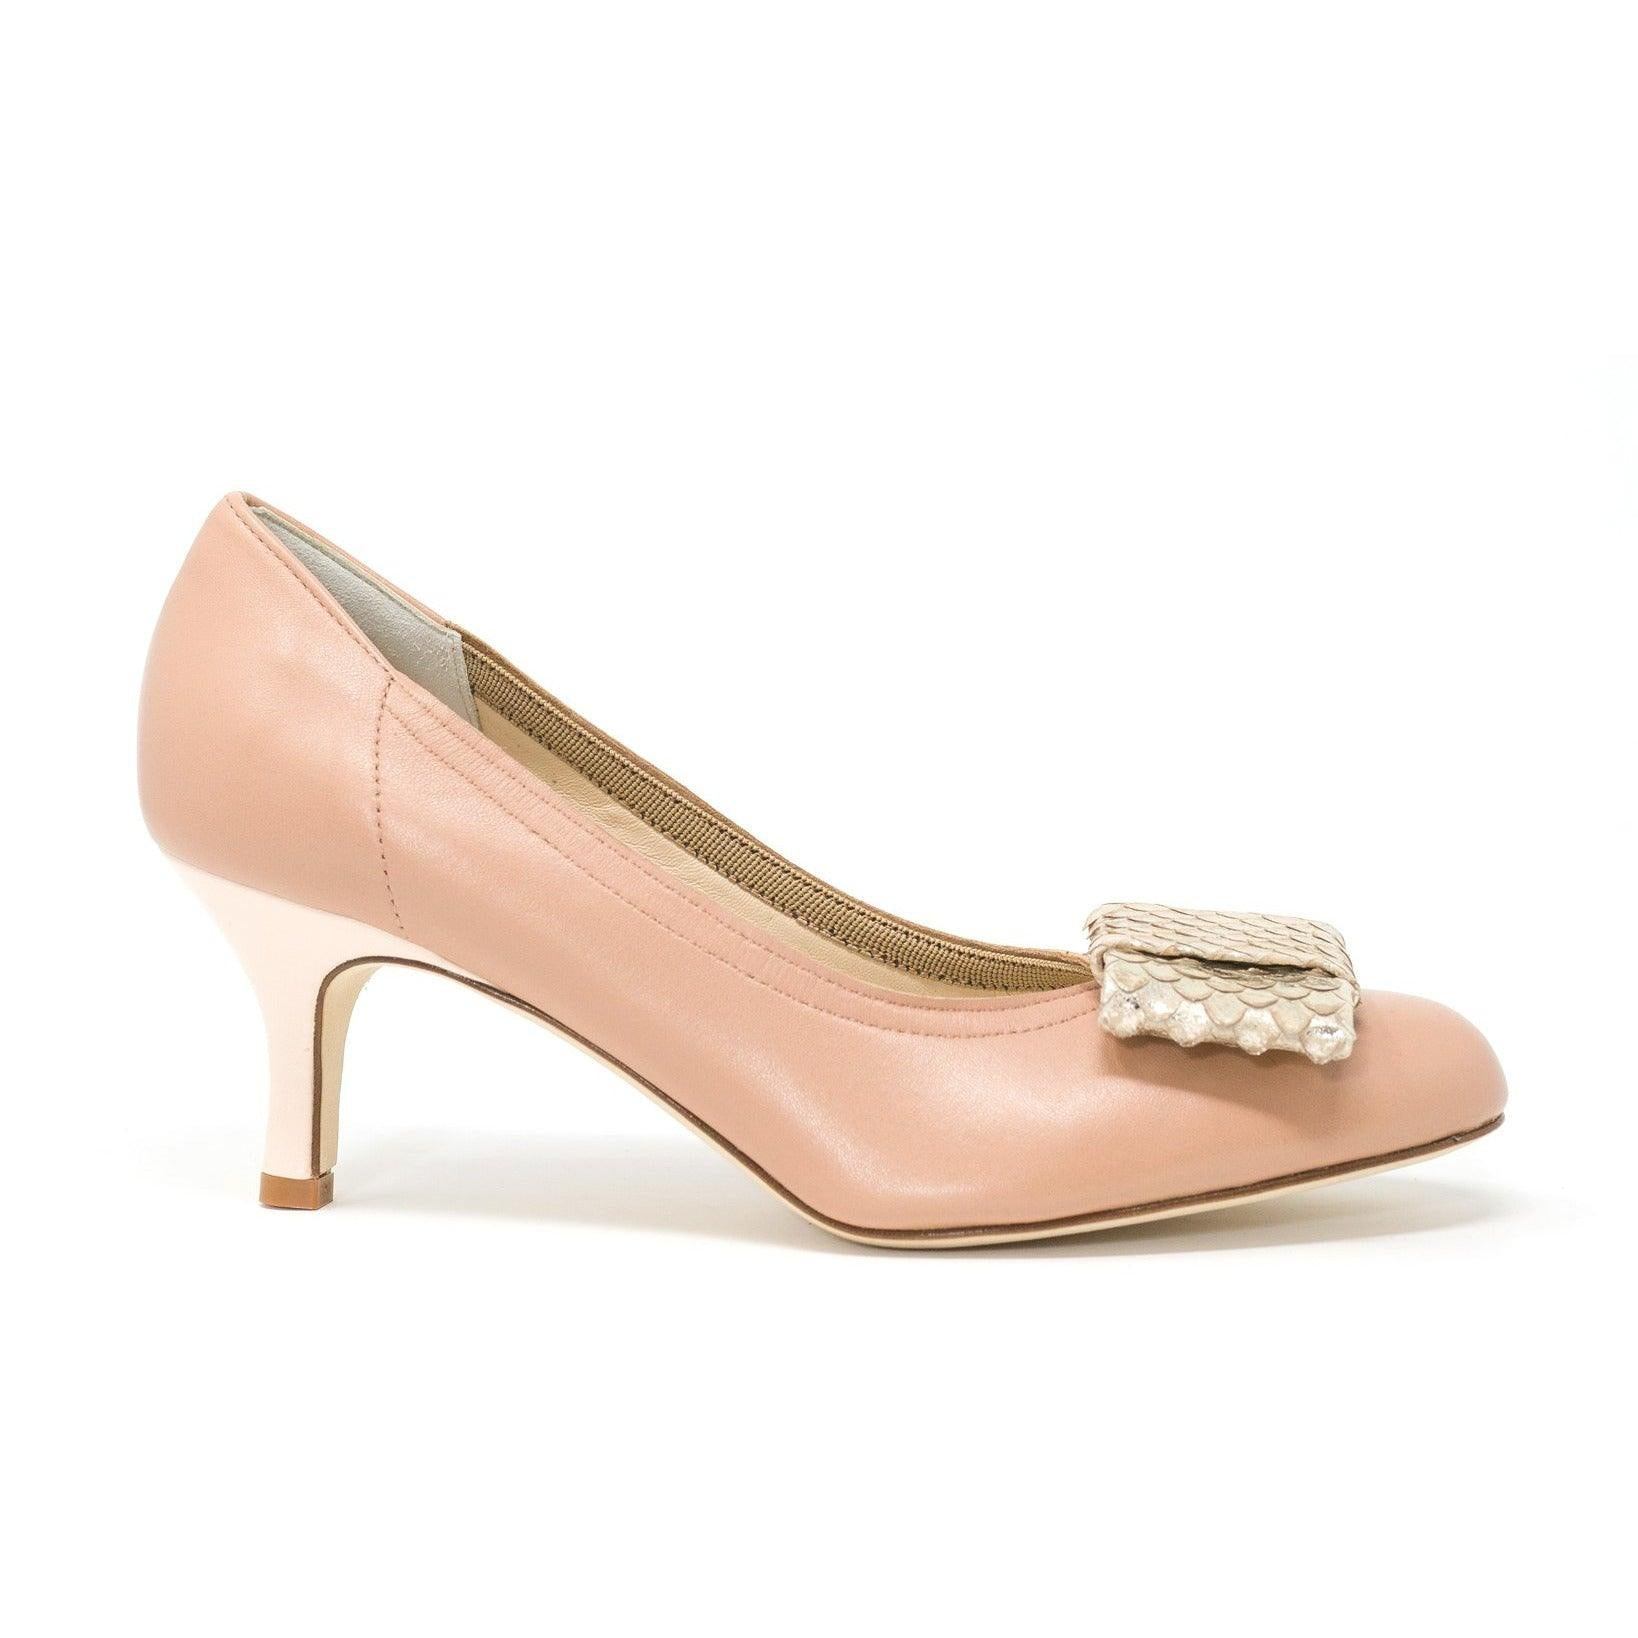 MIL461R 55T Women Pumps - New Spring Summer 2020 Collection